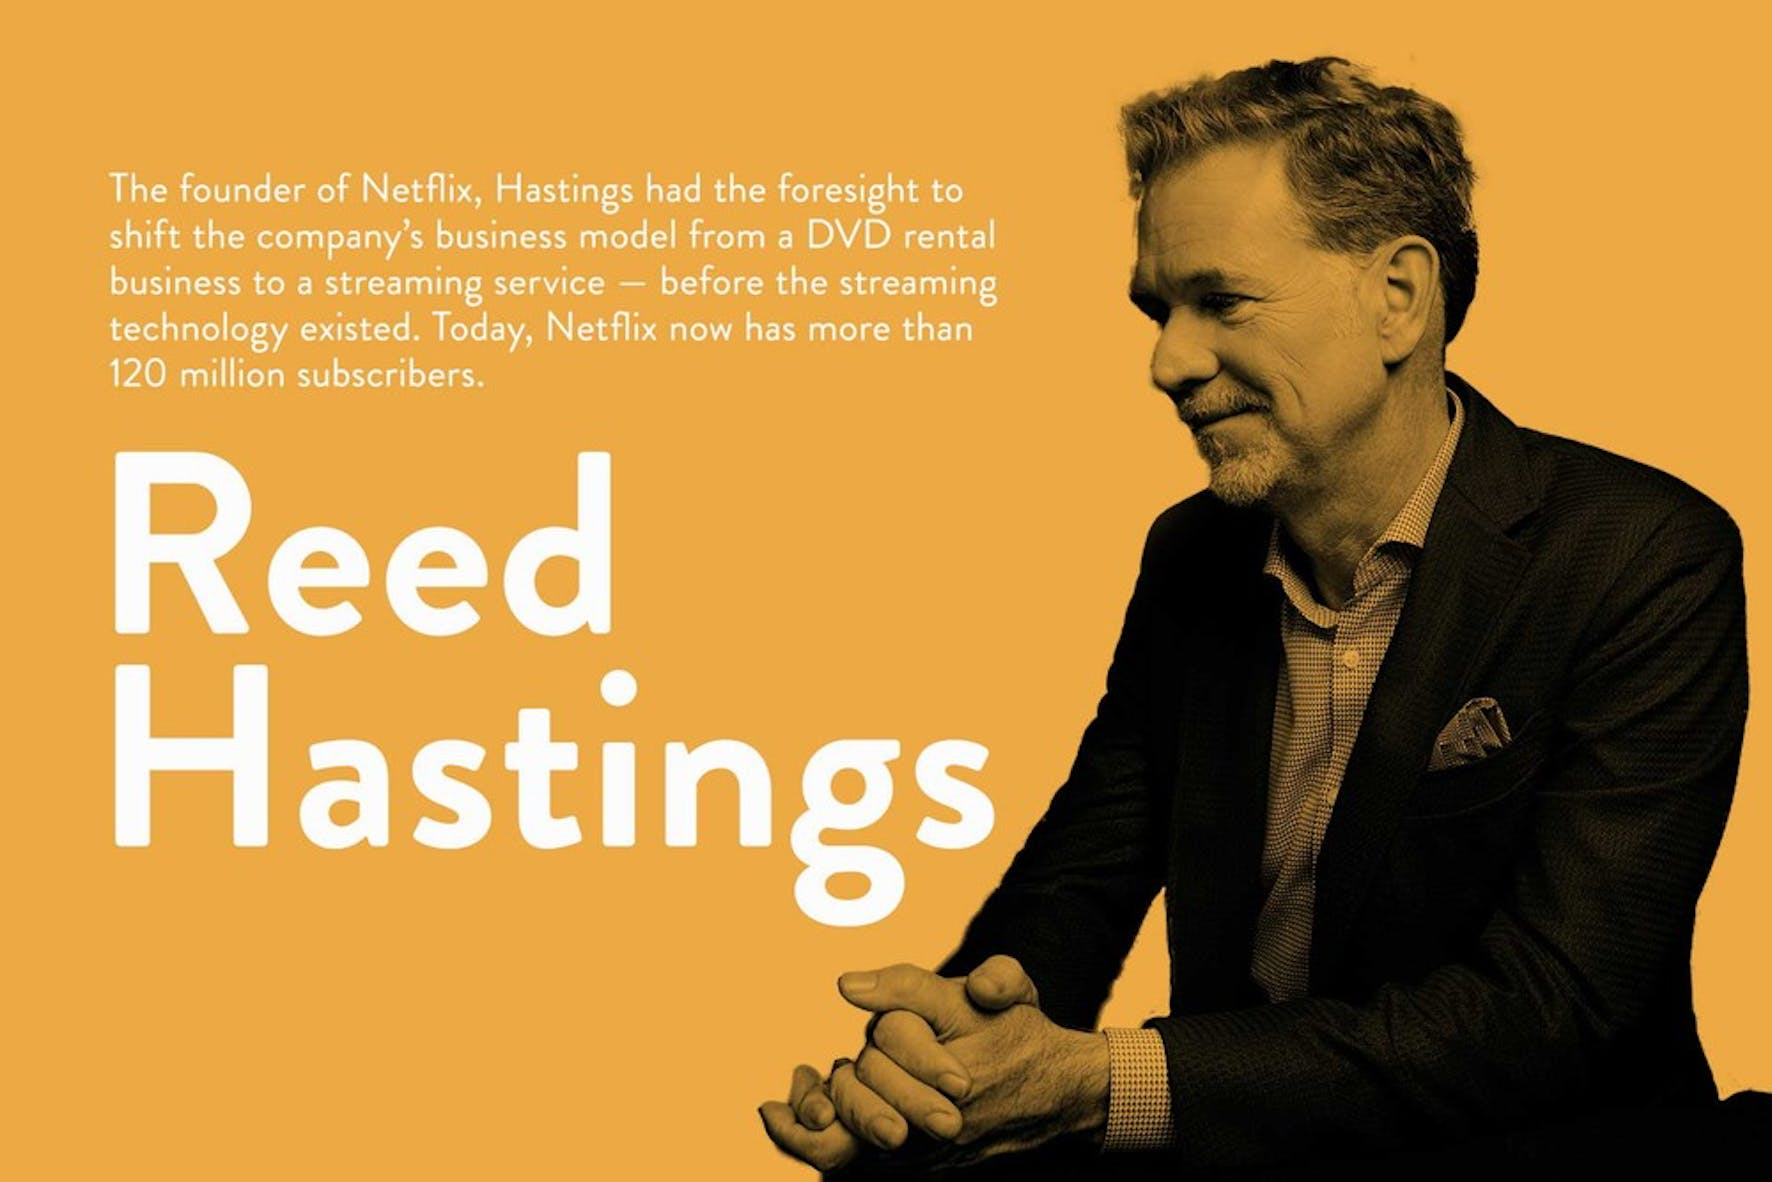 What is a visionary leader? Netflix's Reed Hastings on being a visionary leder